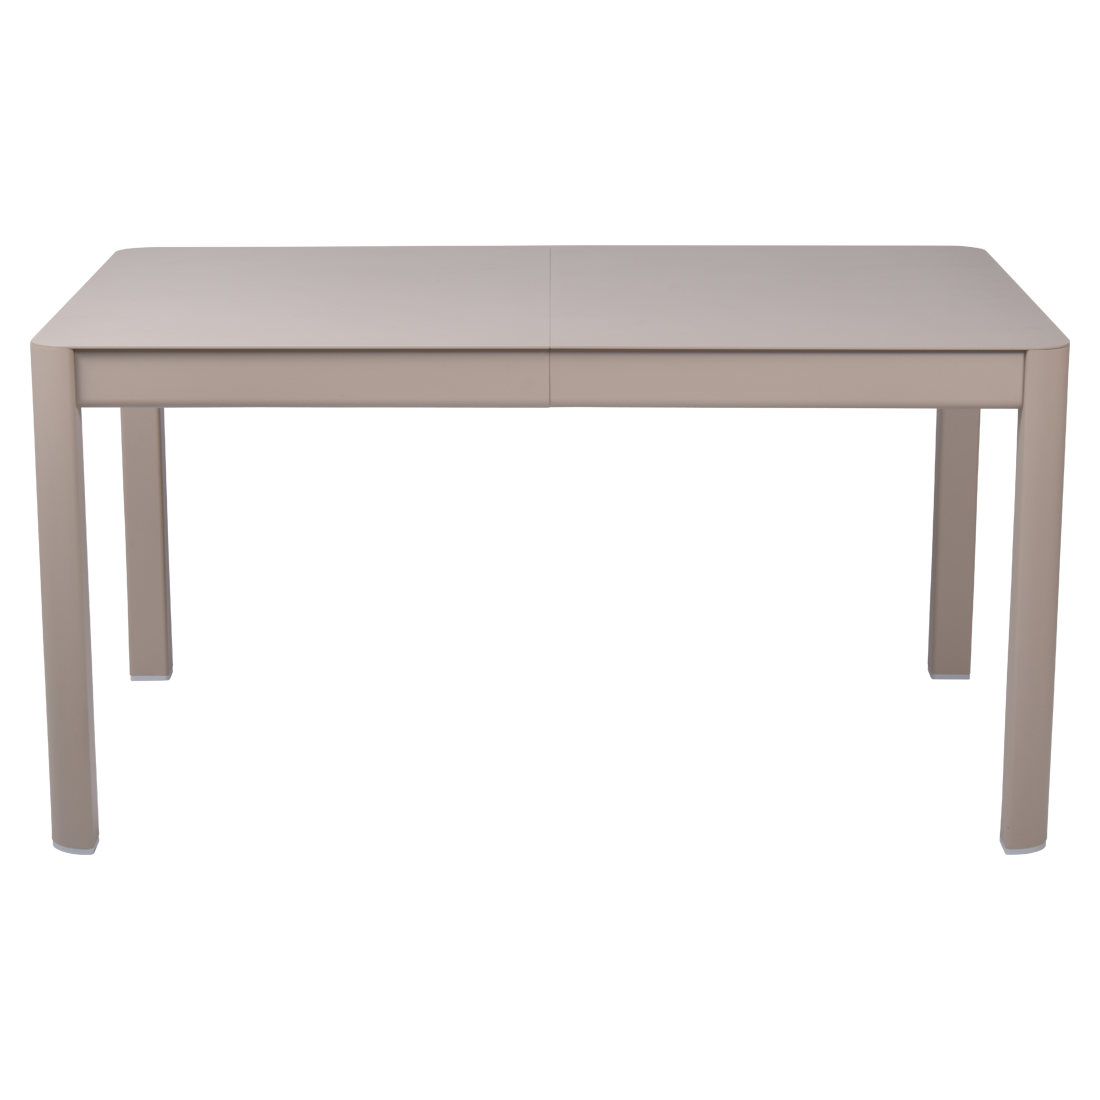 FERMOB Ribambelle Extending Dining Table 6-14 Seater